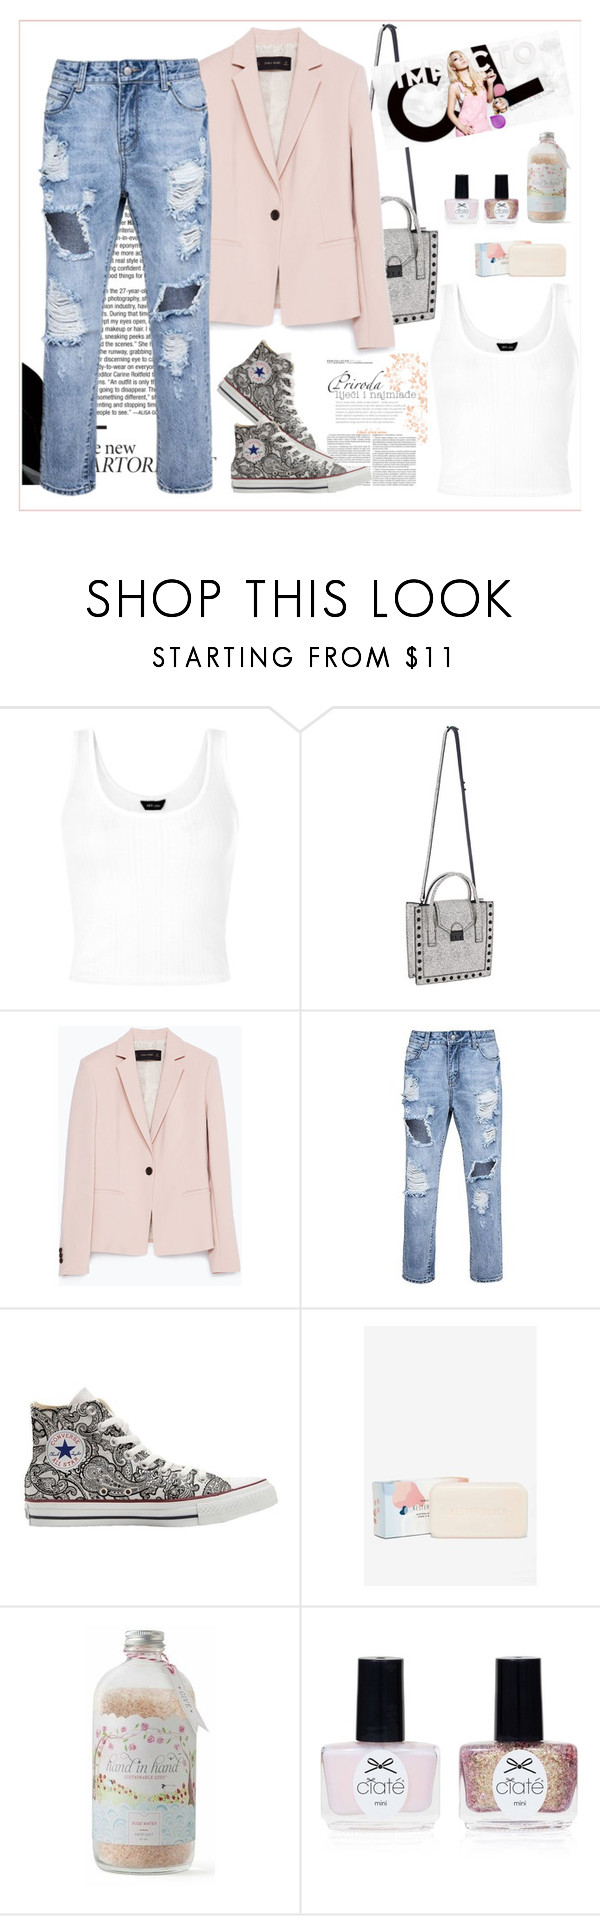 """Nadia"" by biange ❤ liked on Polyvore featuring Loeffler Randall, Zara, Converse, Hand in Hand Soap and Ciaté"